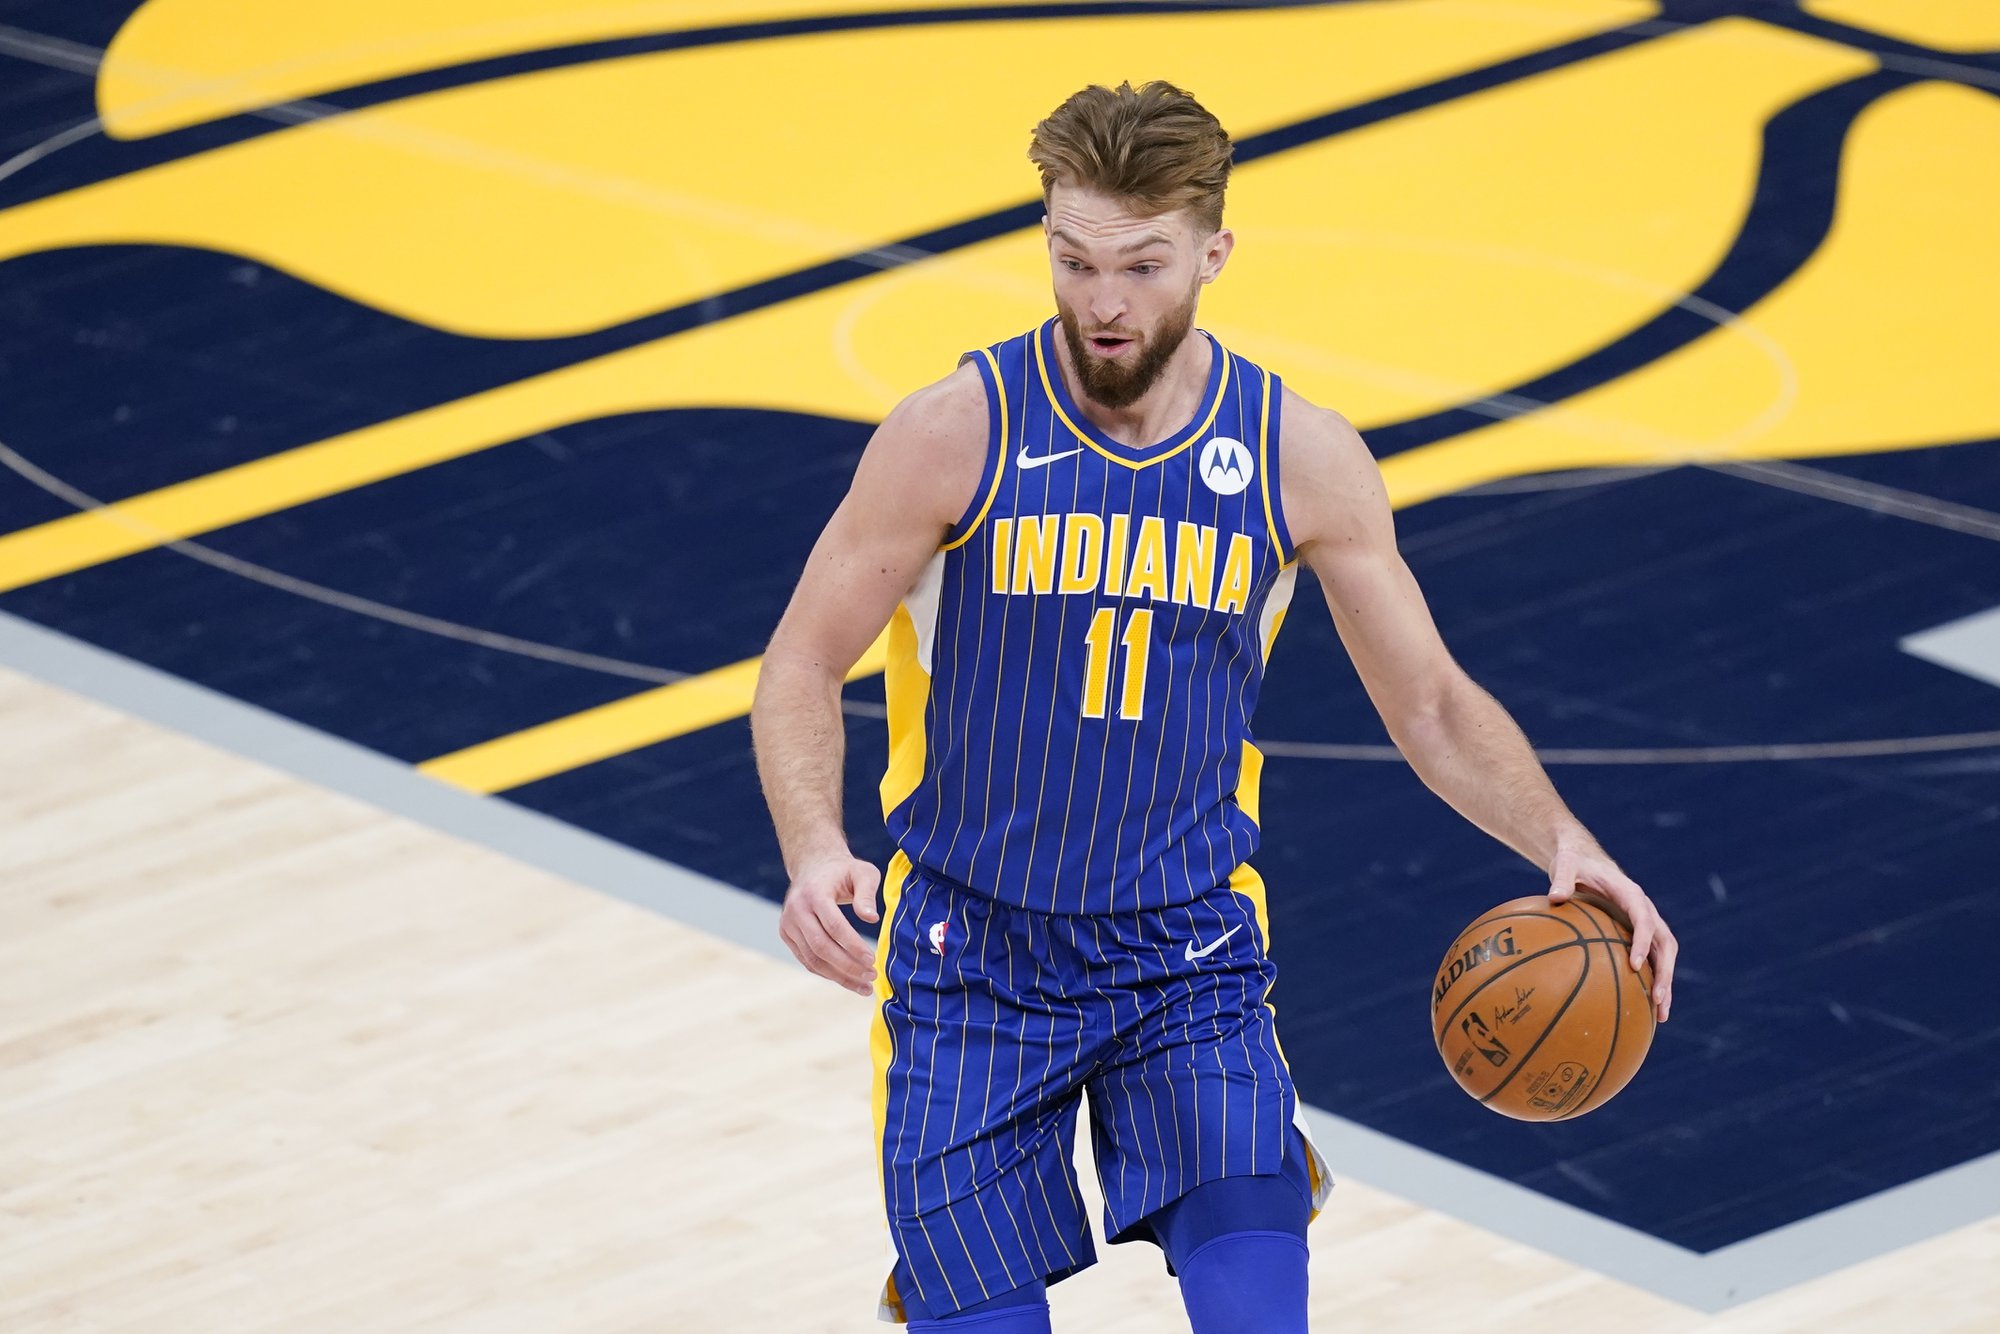 Indiana Pacers forward Domantas Sabonis (11) dribbles during the first half of an NBA basketball game against the Denver Nuggets, Thursday, March 4, 2021, in Indianapolis. (AP Photo/Darron Cummings)